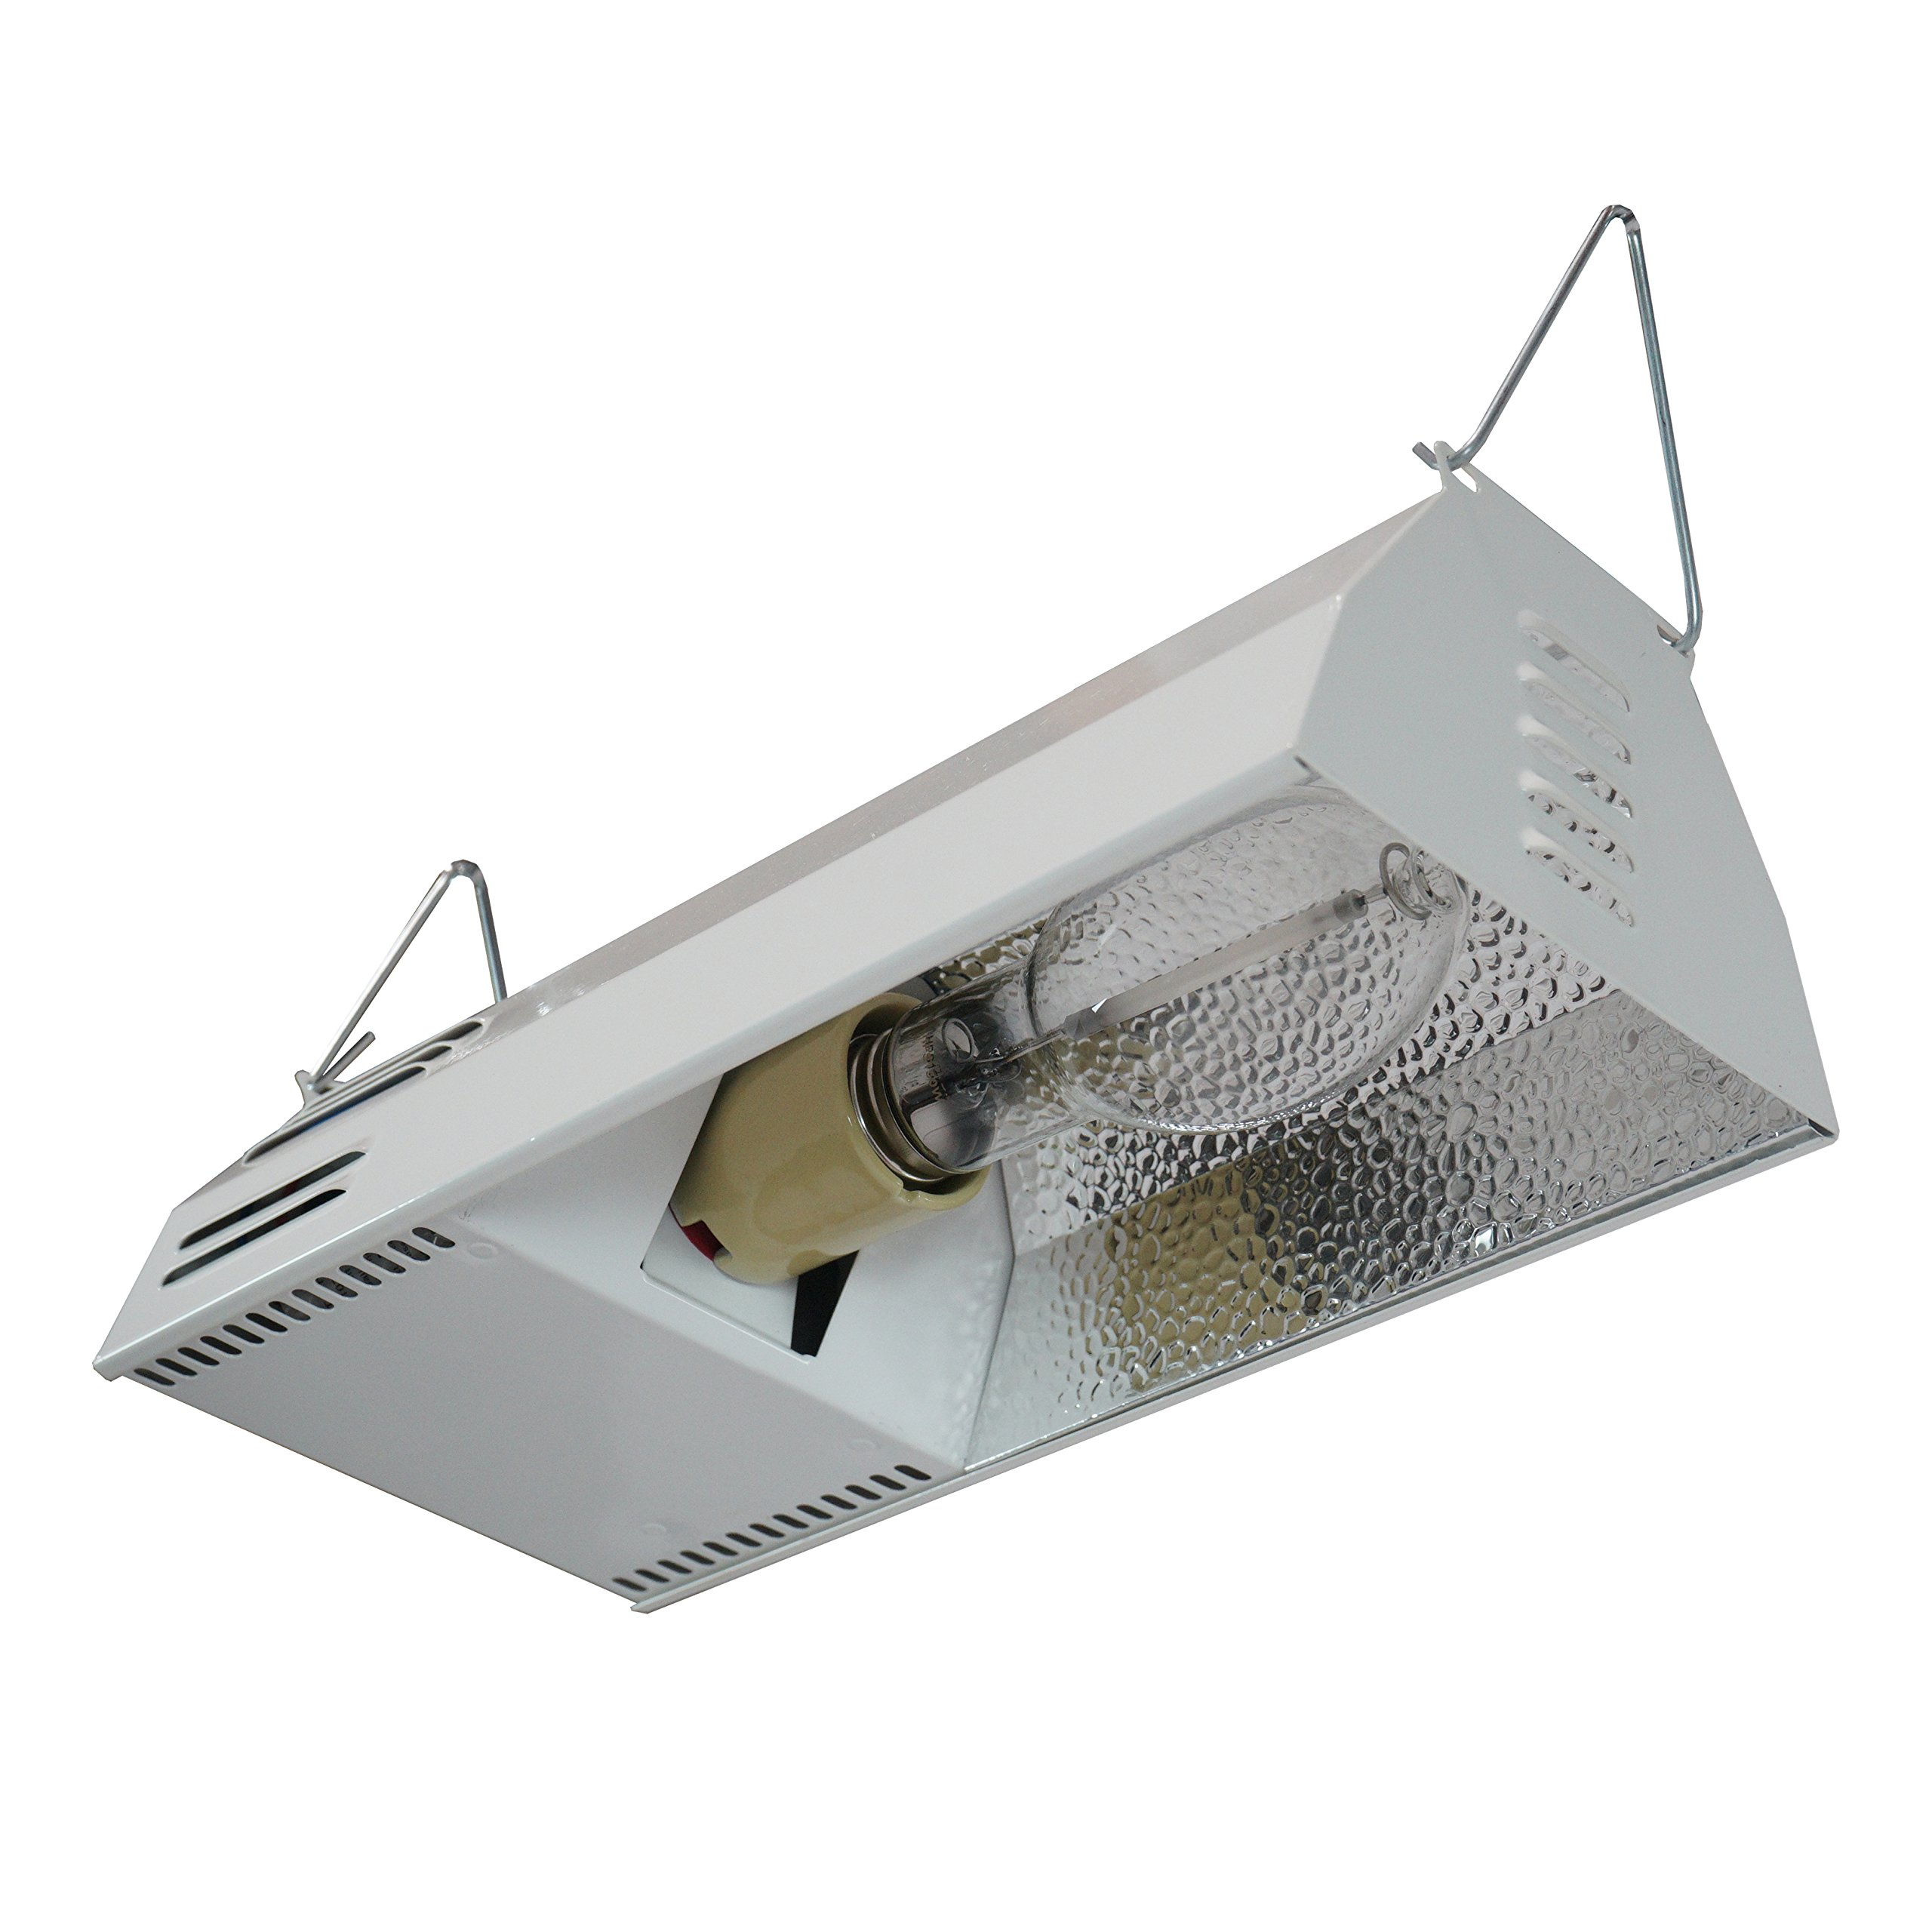 Hydroplanet™ Grow Light Fixture HPS 150W Complete System with Hydroplanet Lamp - HPS Plug and Play Grow Lamp For Hydroponics and Greenhouse Use(150W Grow Light Kit)